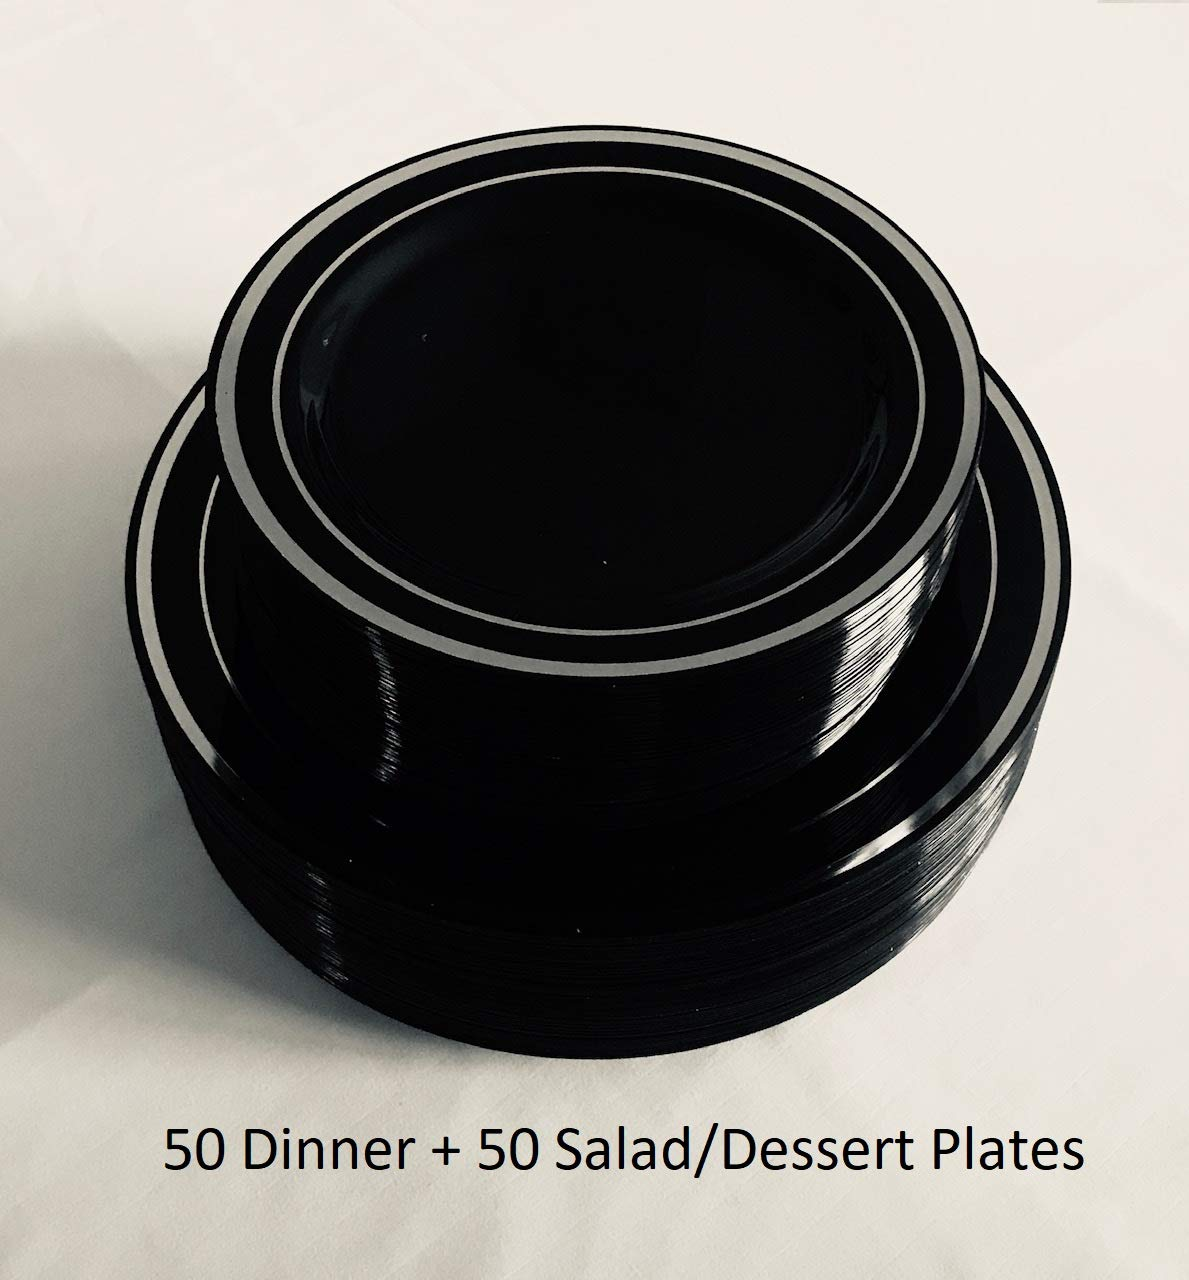 100 Piece Plastic Plates Black & Silver | 50 Guest | 50 Dinner Plates, 50 Dessert Plates by You're Invited (Image #2)